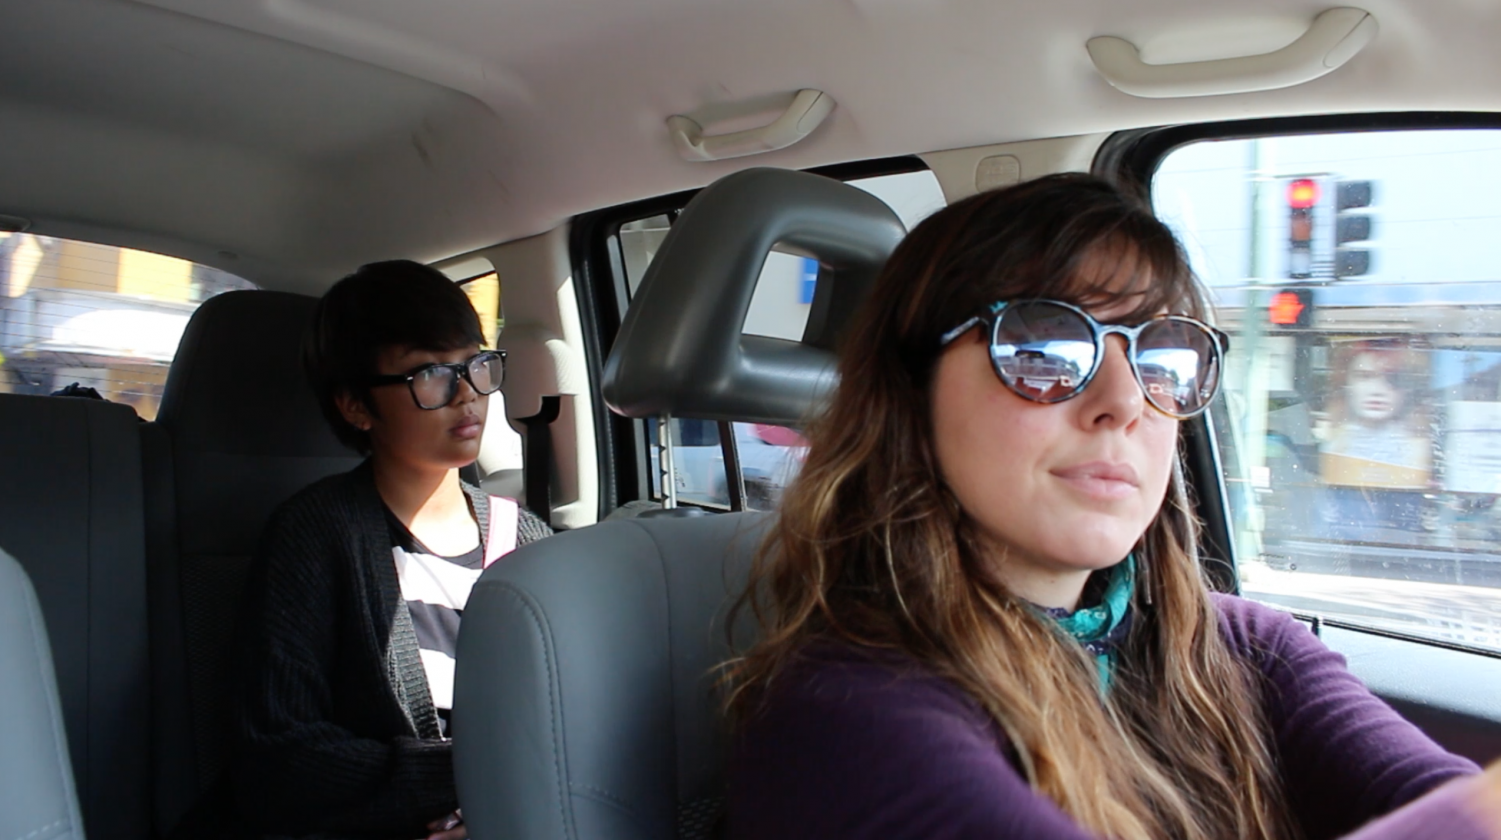 High school senior Grace Francisco (back) frequently uses rideshare service Uber to commute to work and school despite a policy prohibiting minors from riding alone. Driver Bernadette Rosano (front) says there should be a rideshare program for minors. Photo by Shelby Mattos.